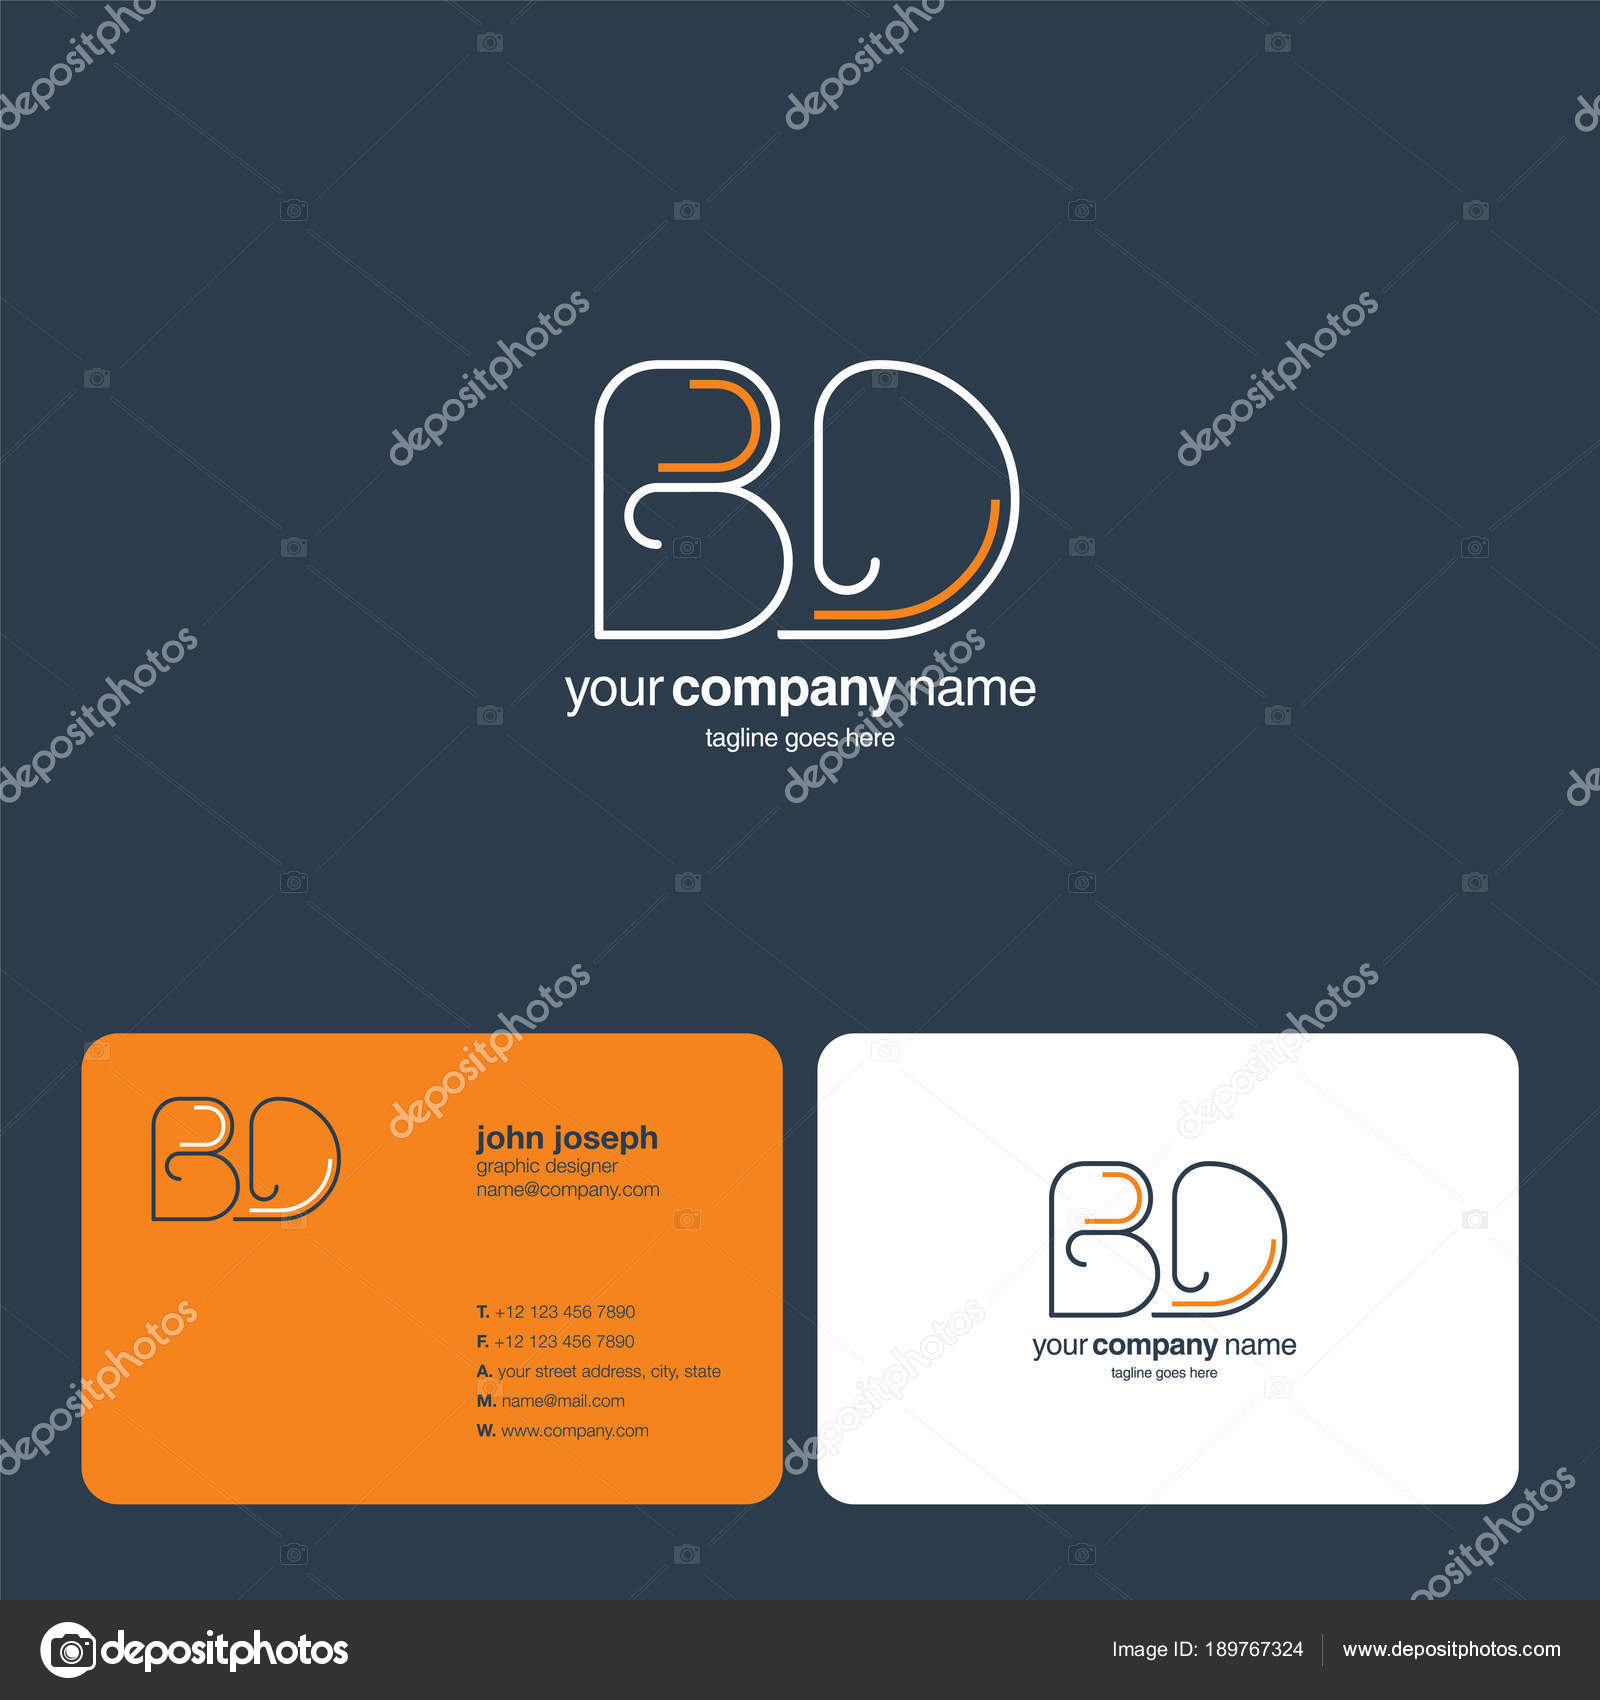 Logo Commun Bd Pour Le Modele De Carte Visite Vecteur Illustration Stock